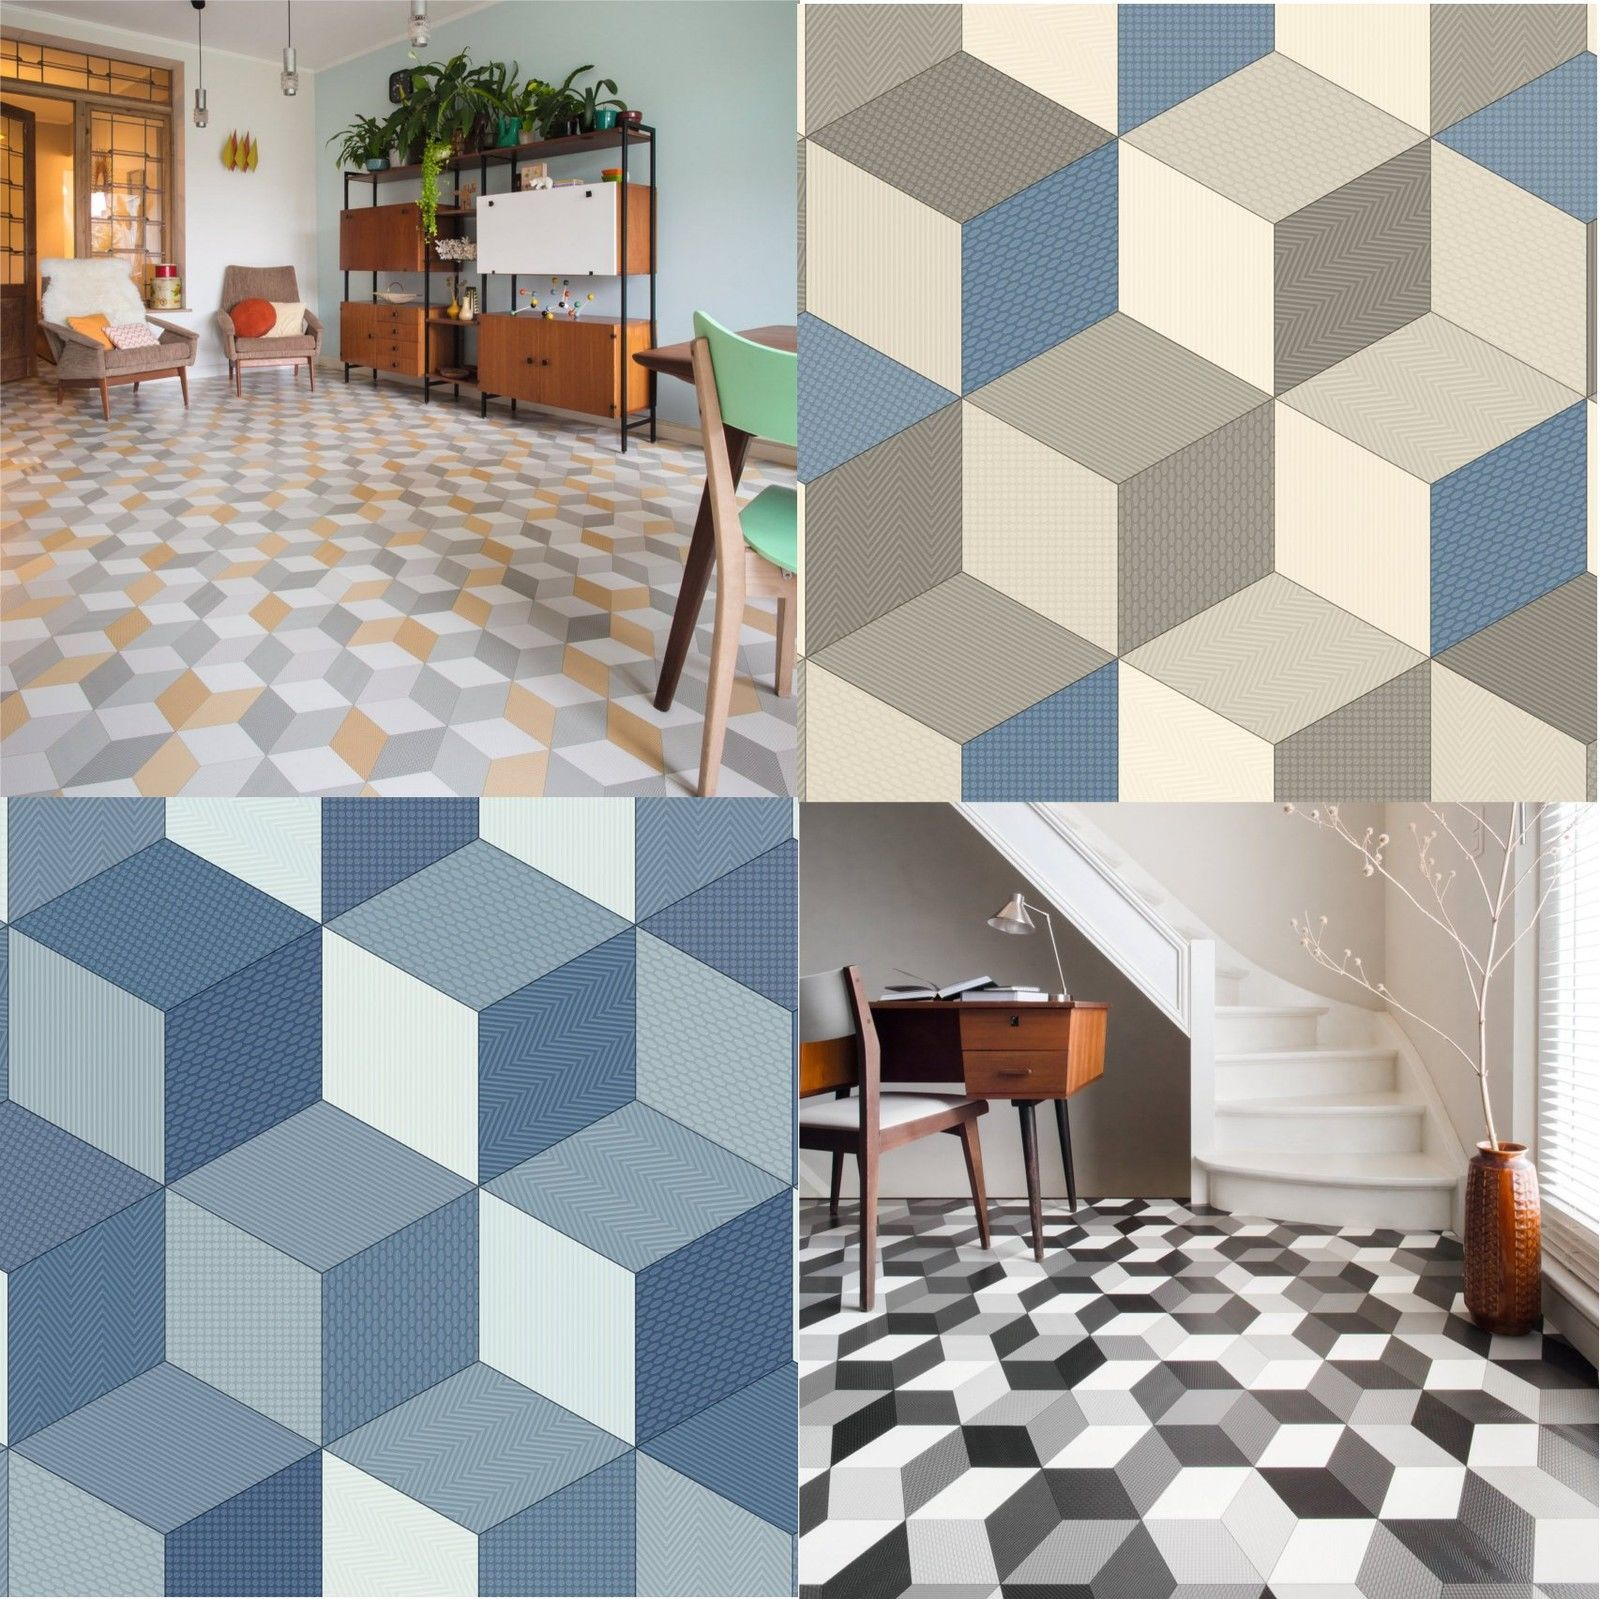 Cushioned Vinyl Flooring Sheet Cube It Geometric Design Kitchen Bathroom Lino Ebay Vinyl Flooring Cushioned Vinyl Flooring Flooring